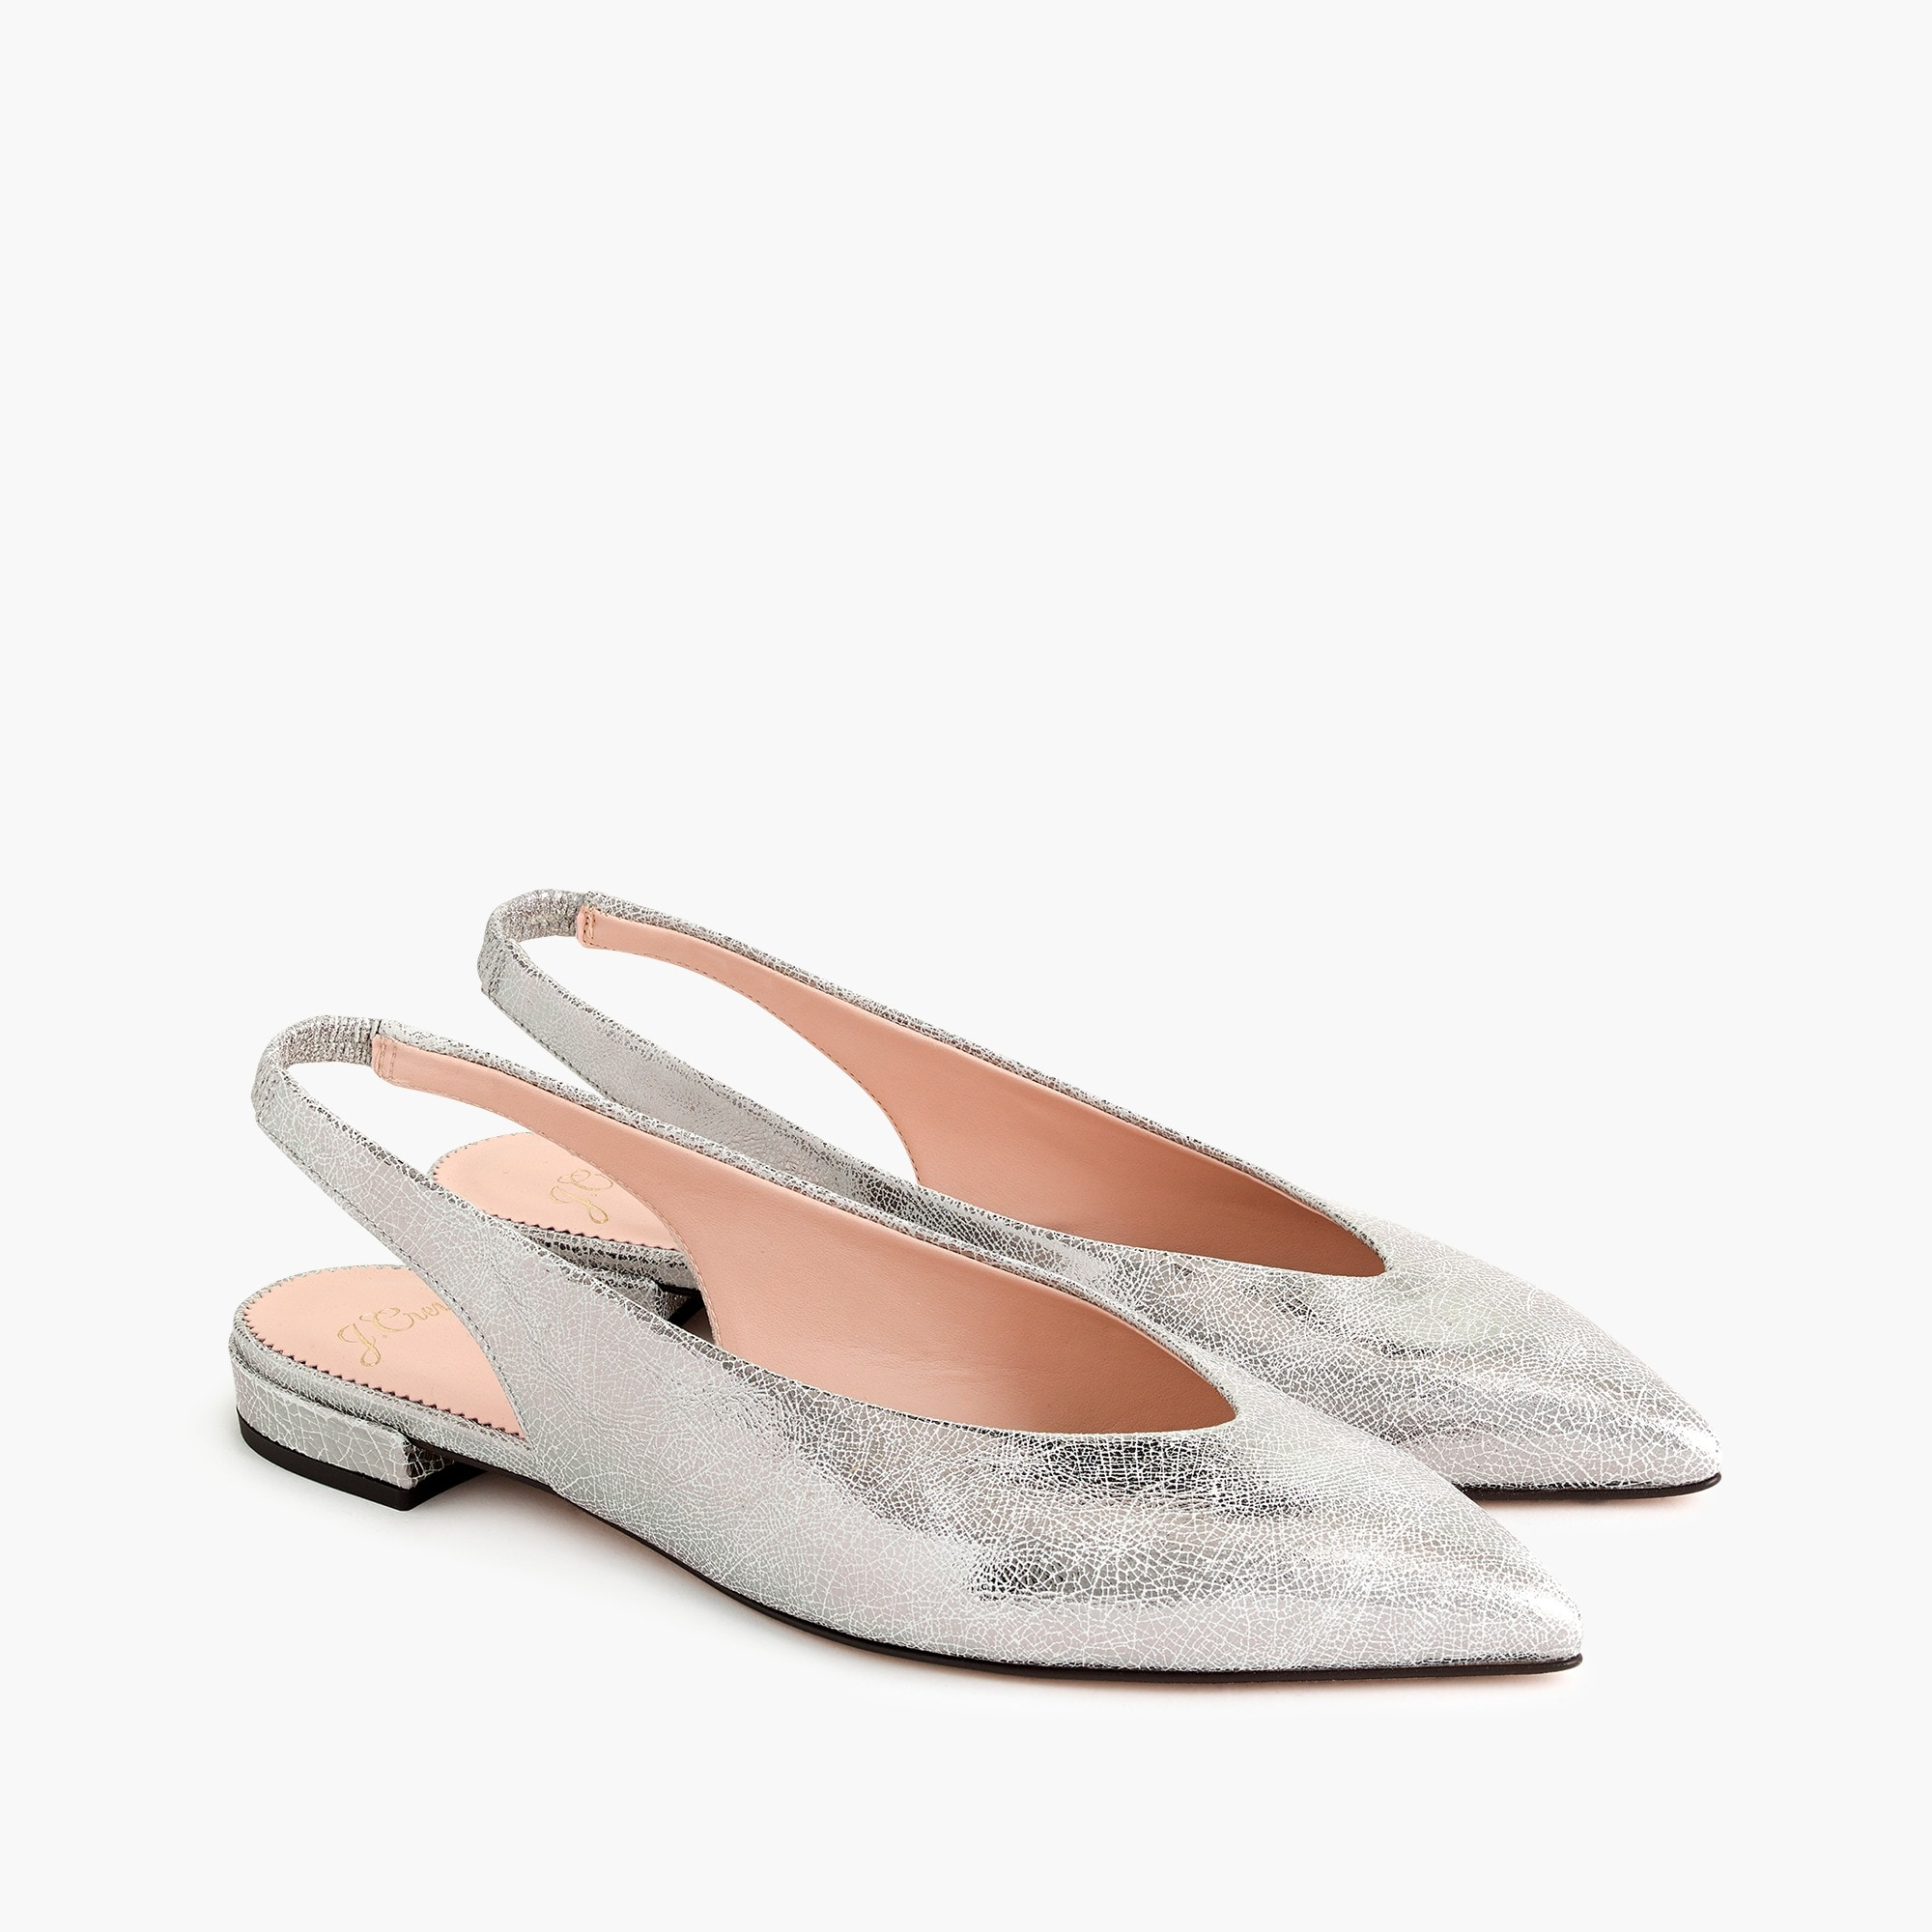 Image 3 for Pointed-toe slingback flats in metallic cracked-leather